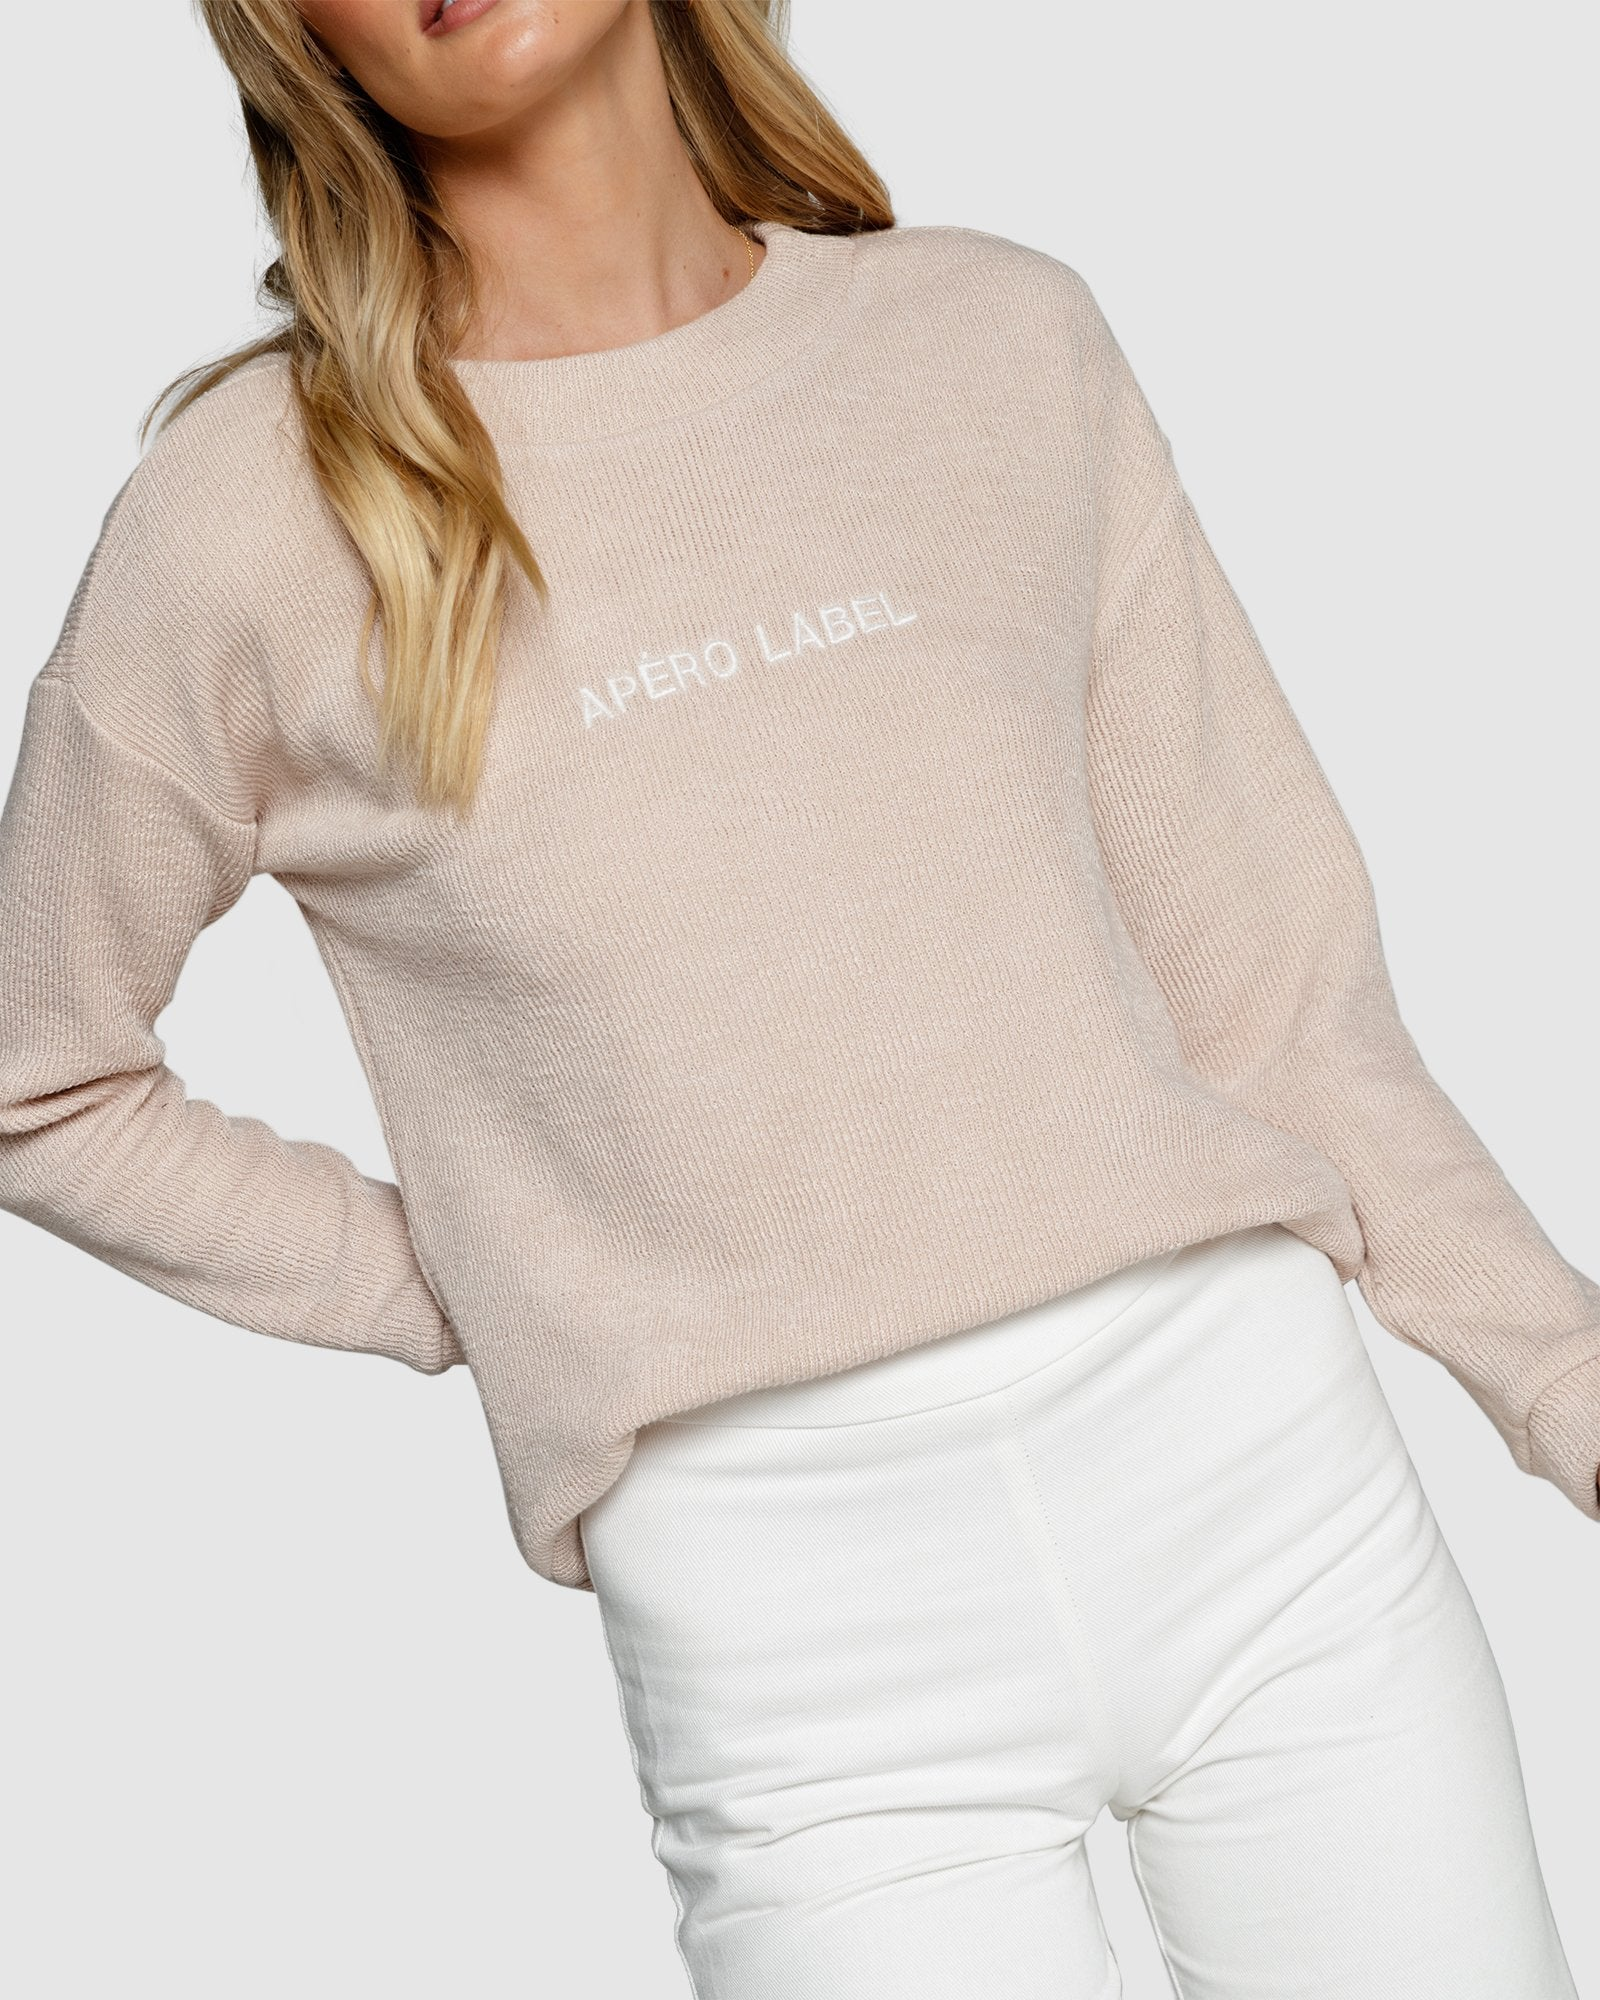 Apero Label Embroidered Jumper